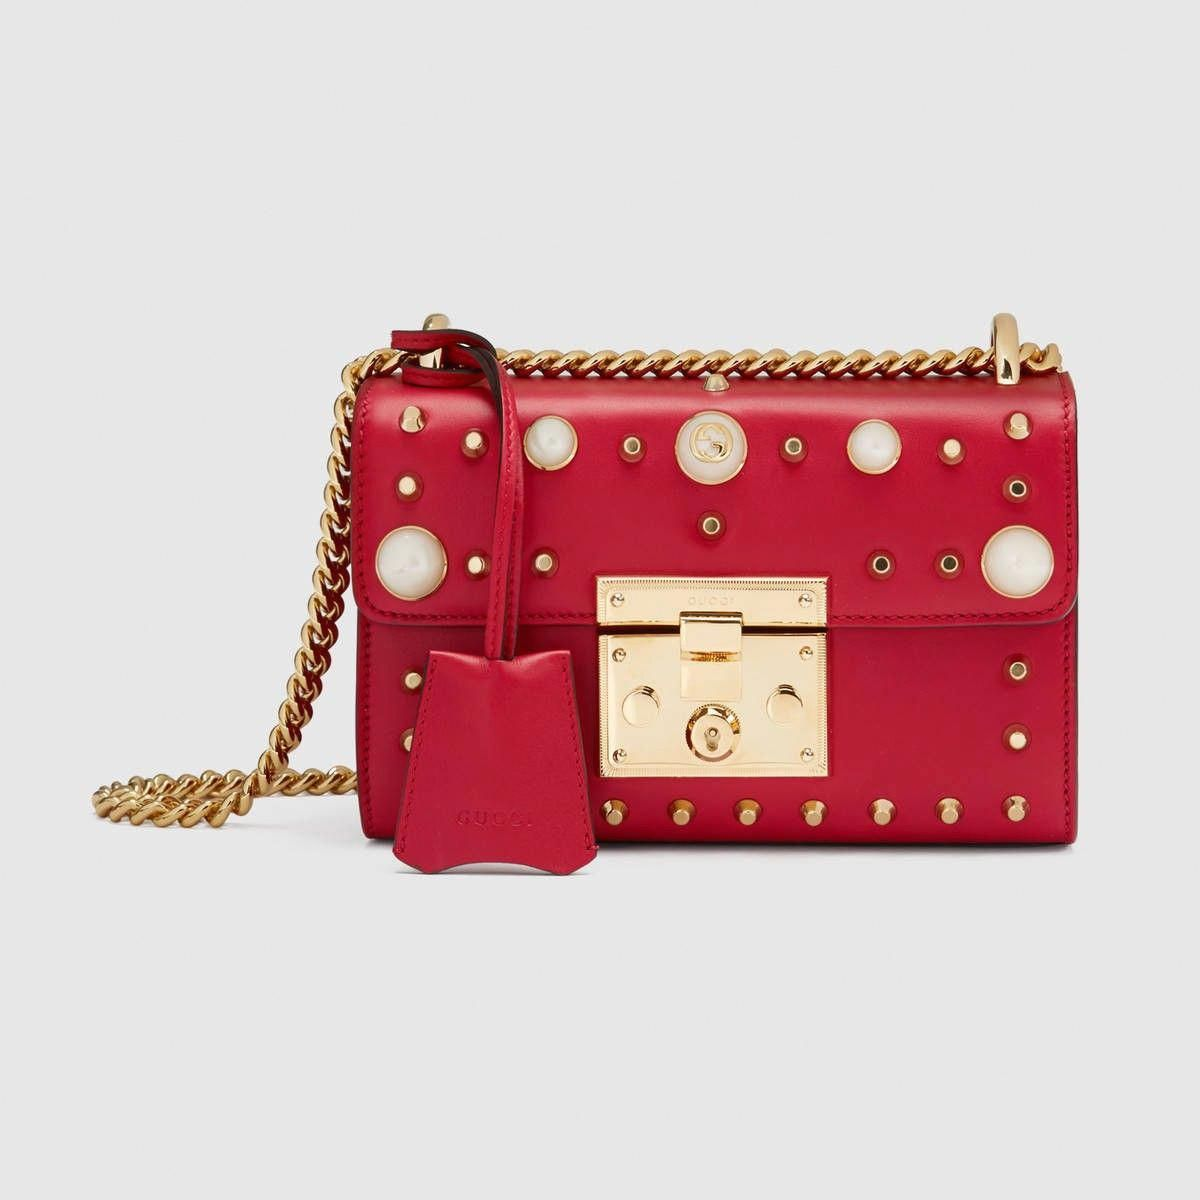 553cc08122b GUCCI Padlock studded leather shoulder bag - hibiscus red leather.  gucci   bags  shoulder bags  hand bags  leather  lace